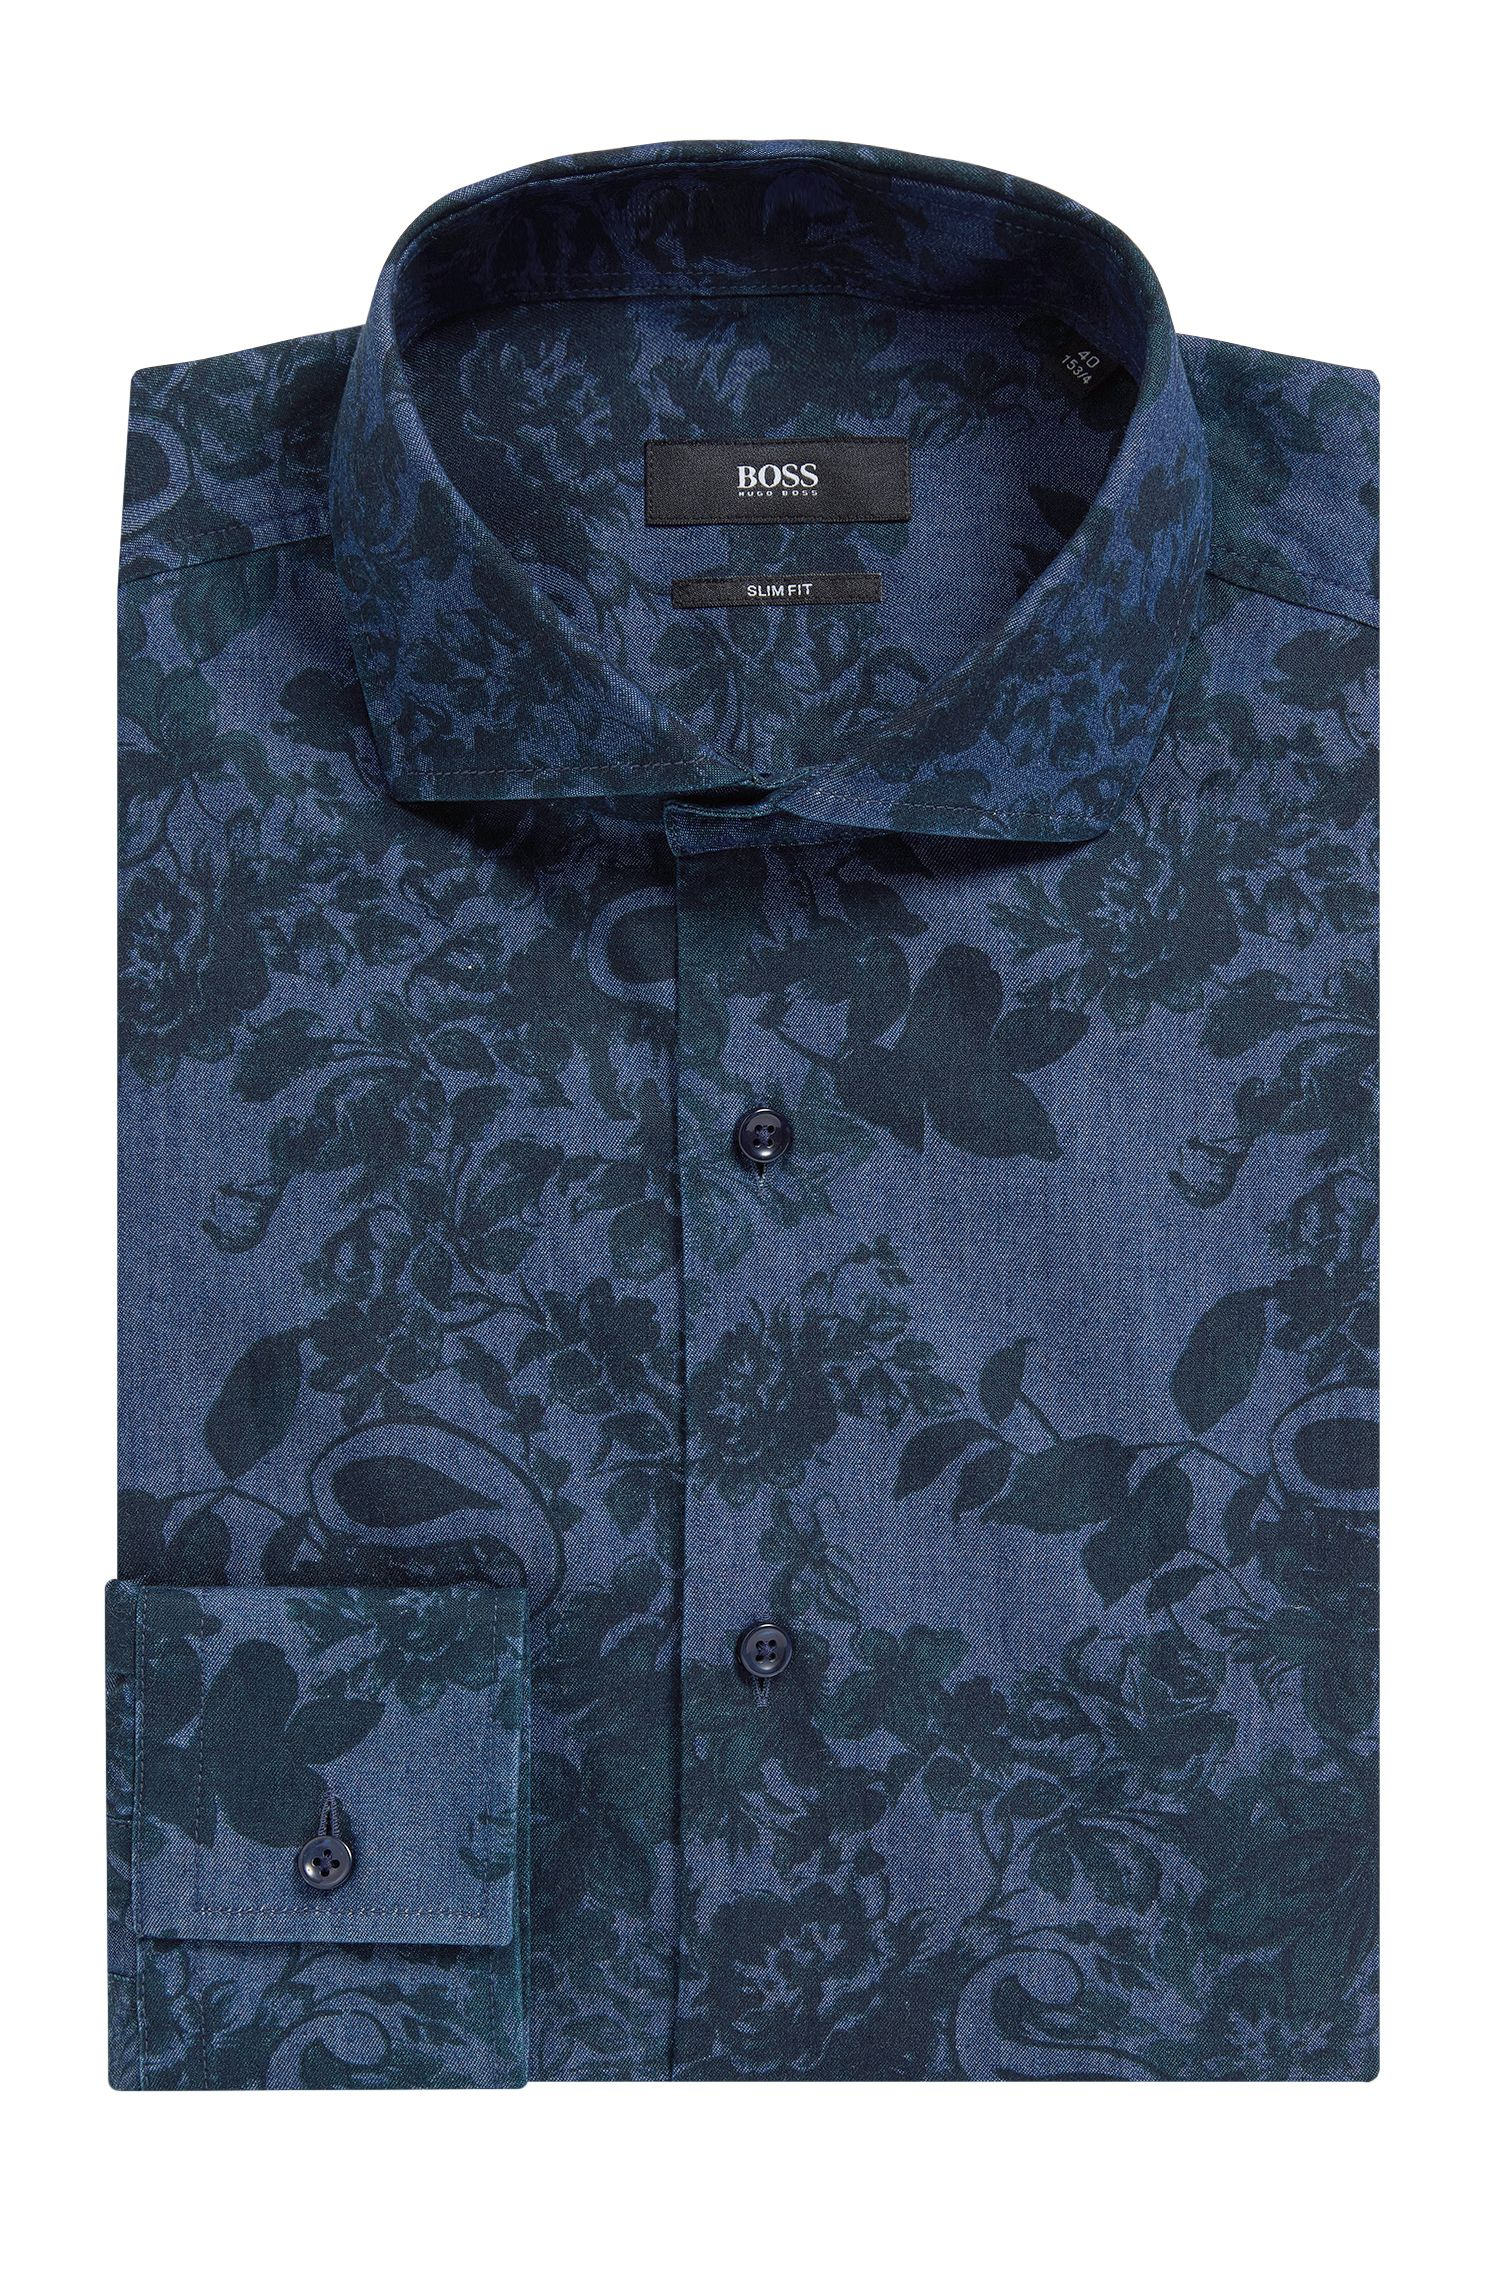 Floral Cotton Dress Shirt, Slim Fit | Jason, Open Green